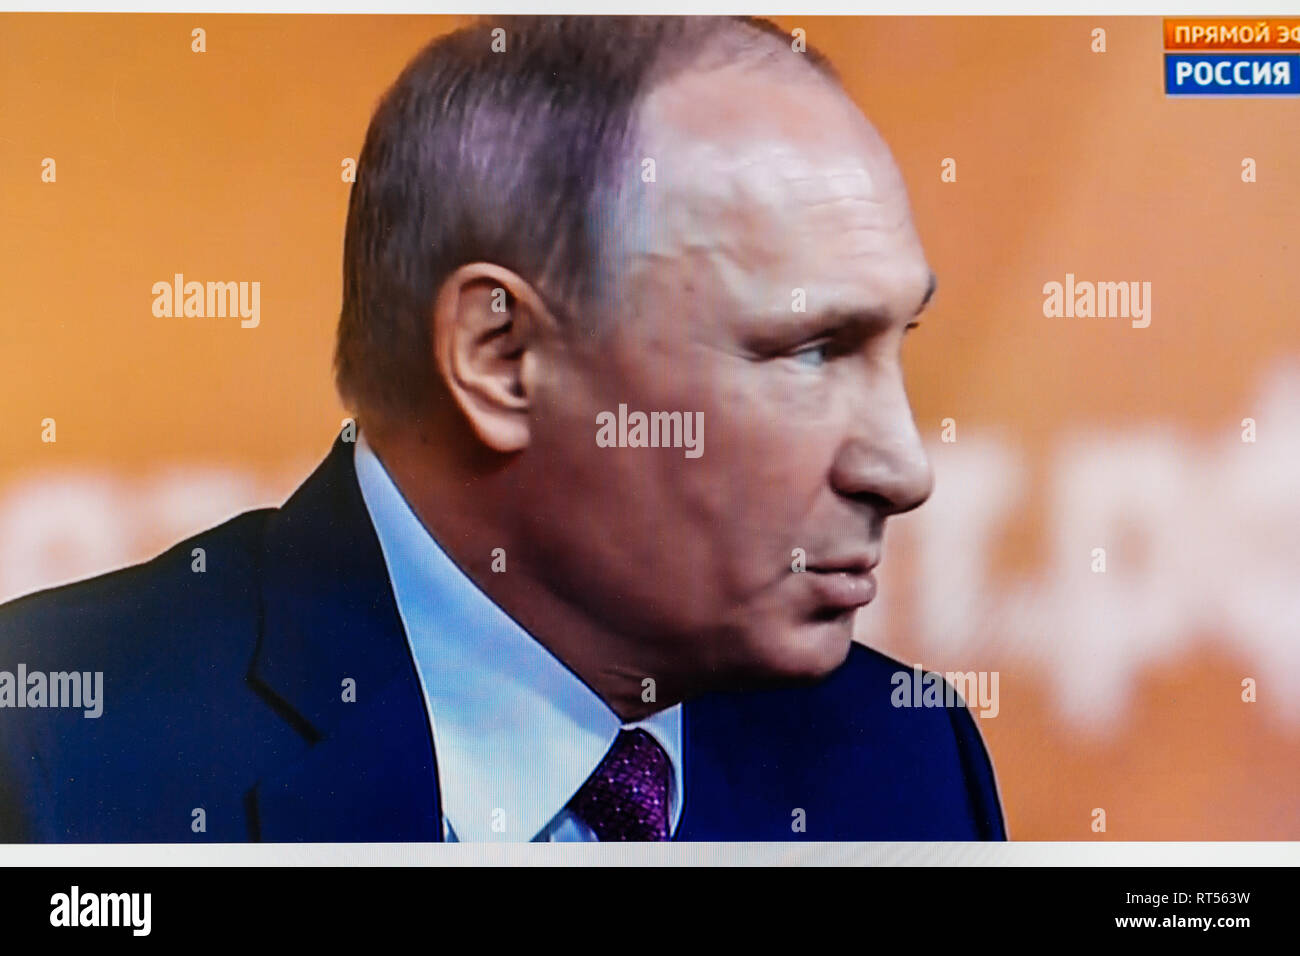 PARIS, FRANCE - DEC 14, 2017: POV watching on Youtube live channel of Rossiya RTR the Russian President Vladimir Putin give final media Q&A before March election - face portrait close-up - Stock Image